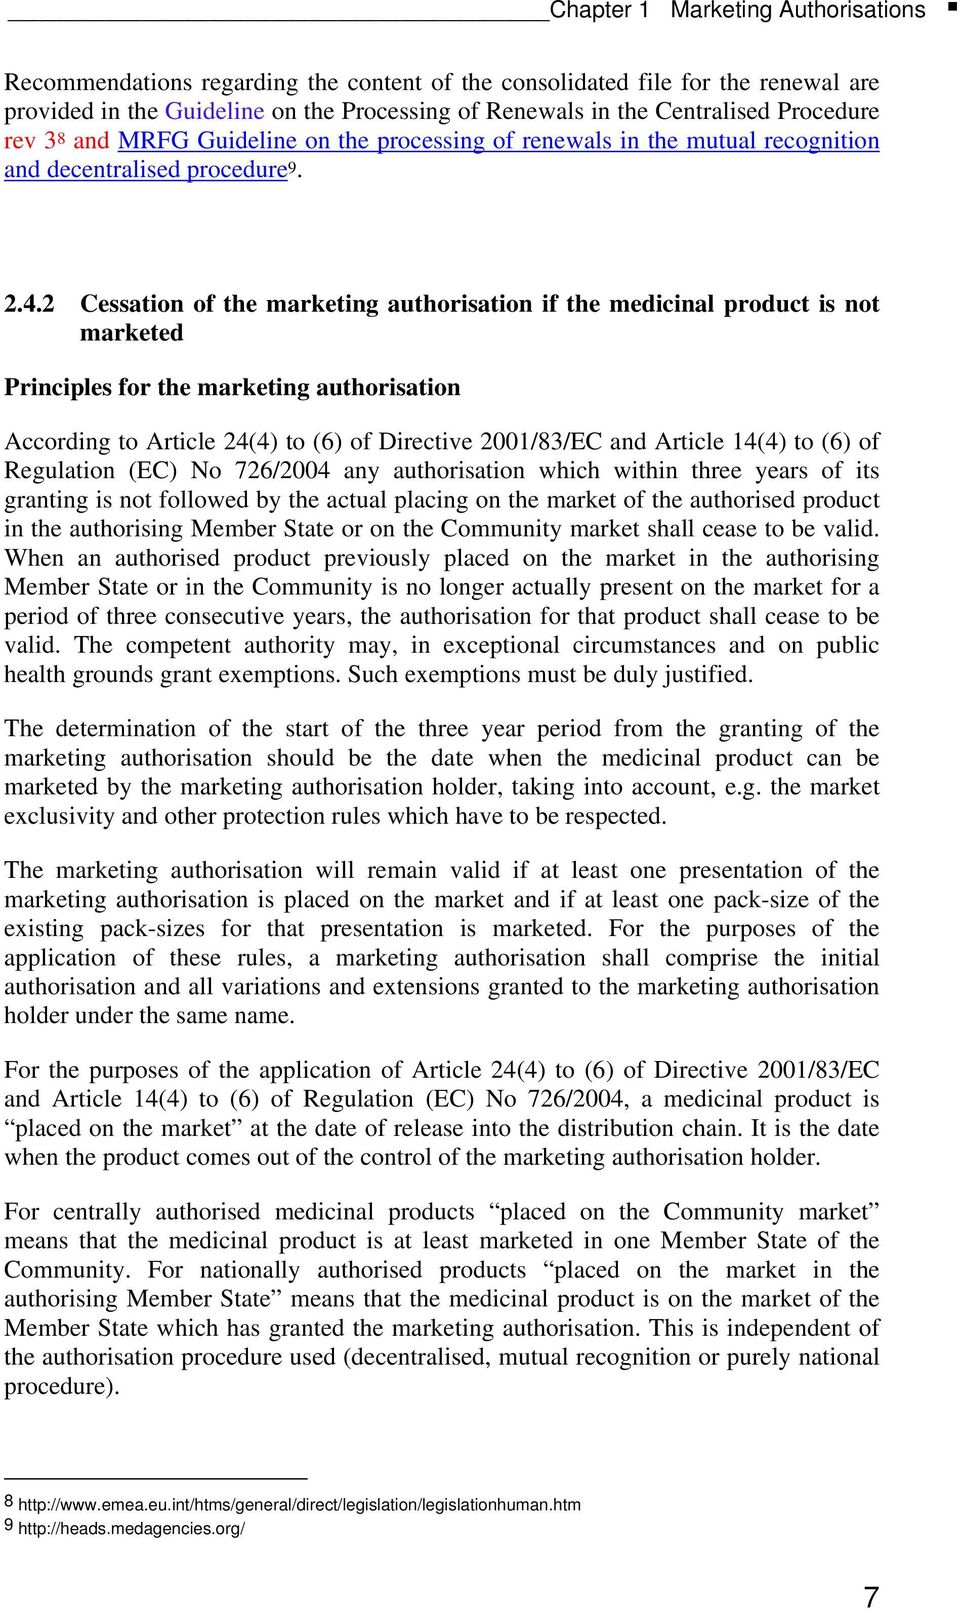 2 Cessation of the marketing authorisation if the medicinal product is not marketed Principles for the marketing authorisation According to Article 24(4) to (6) of Directive 2001/83/EC and Article